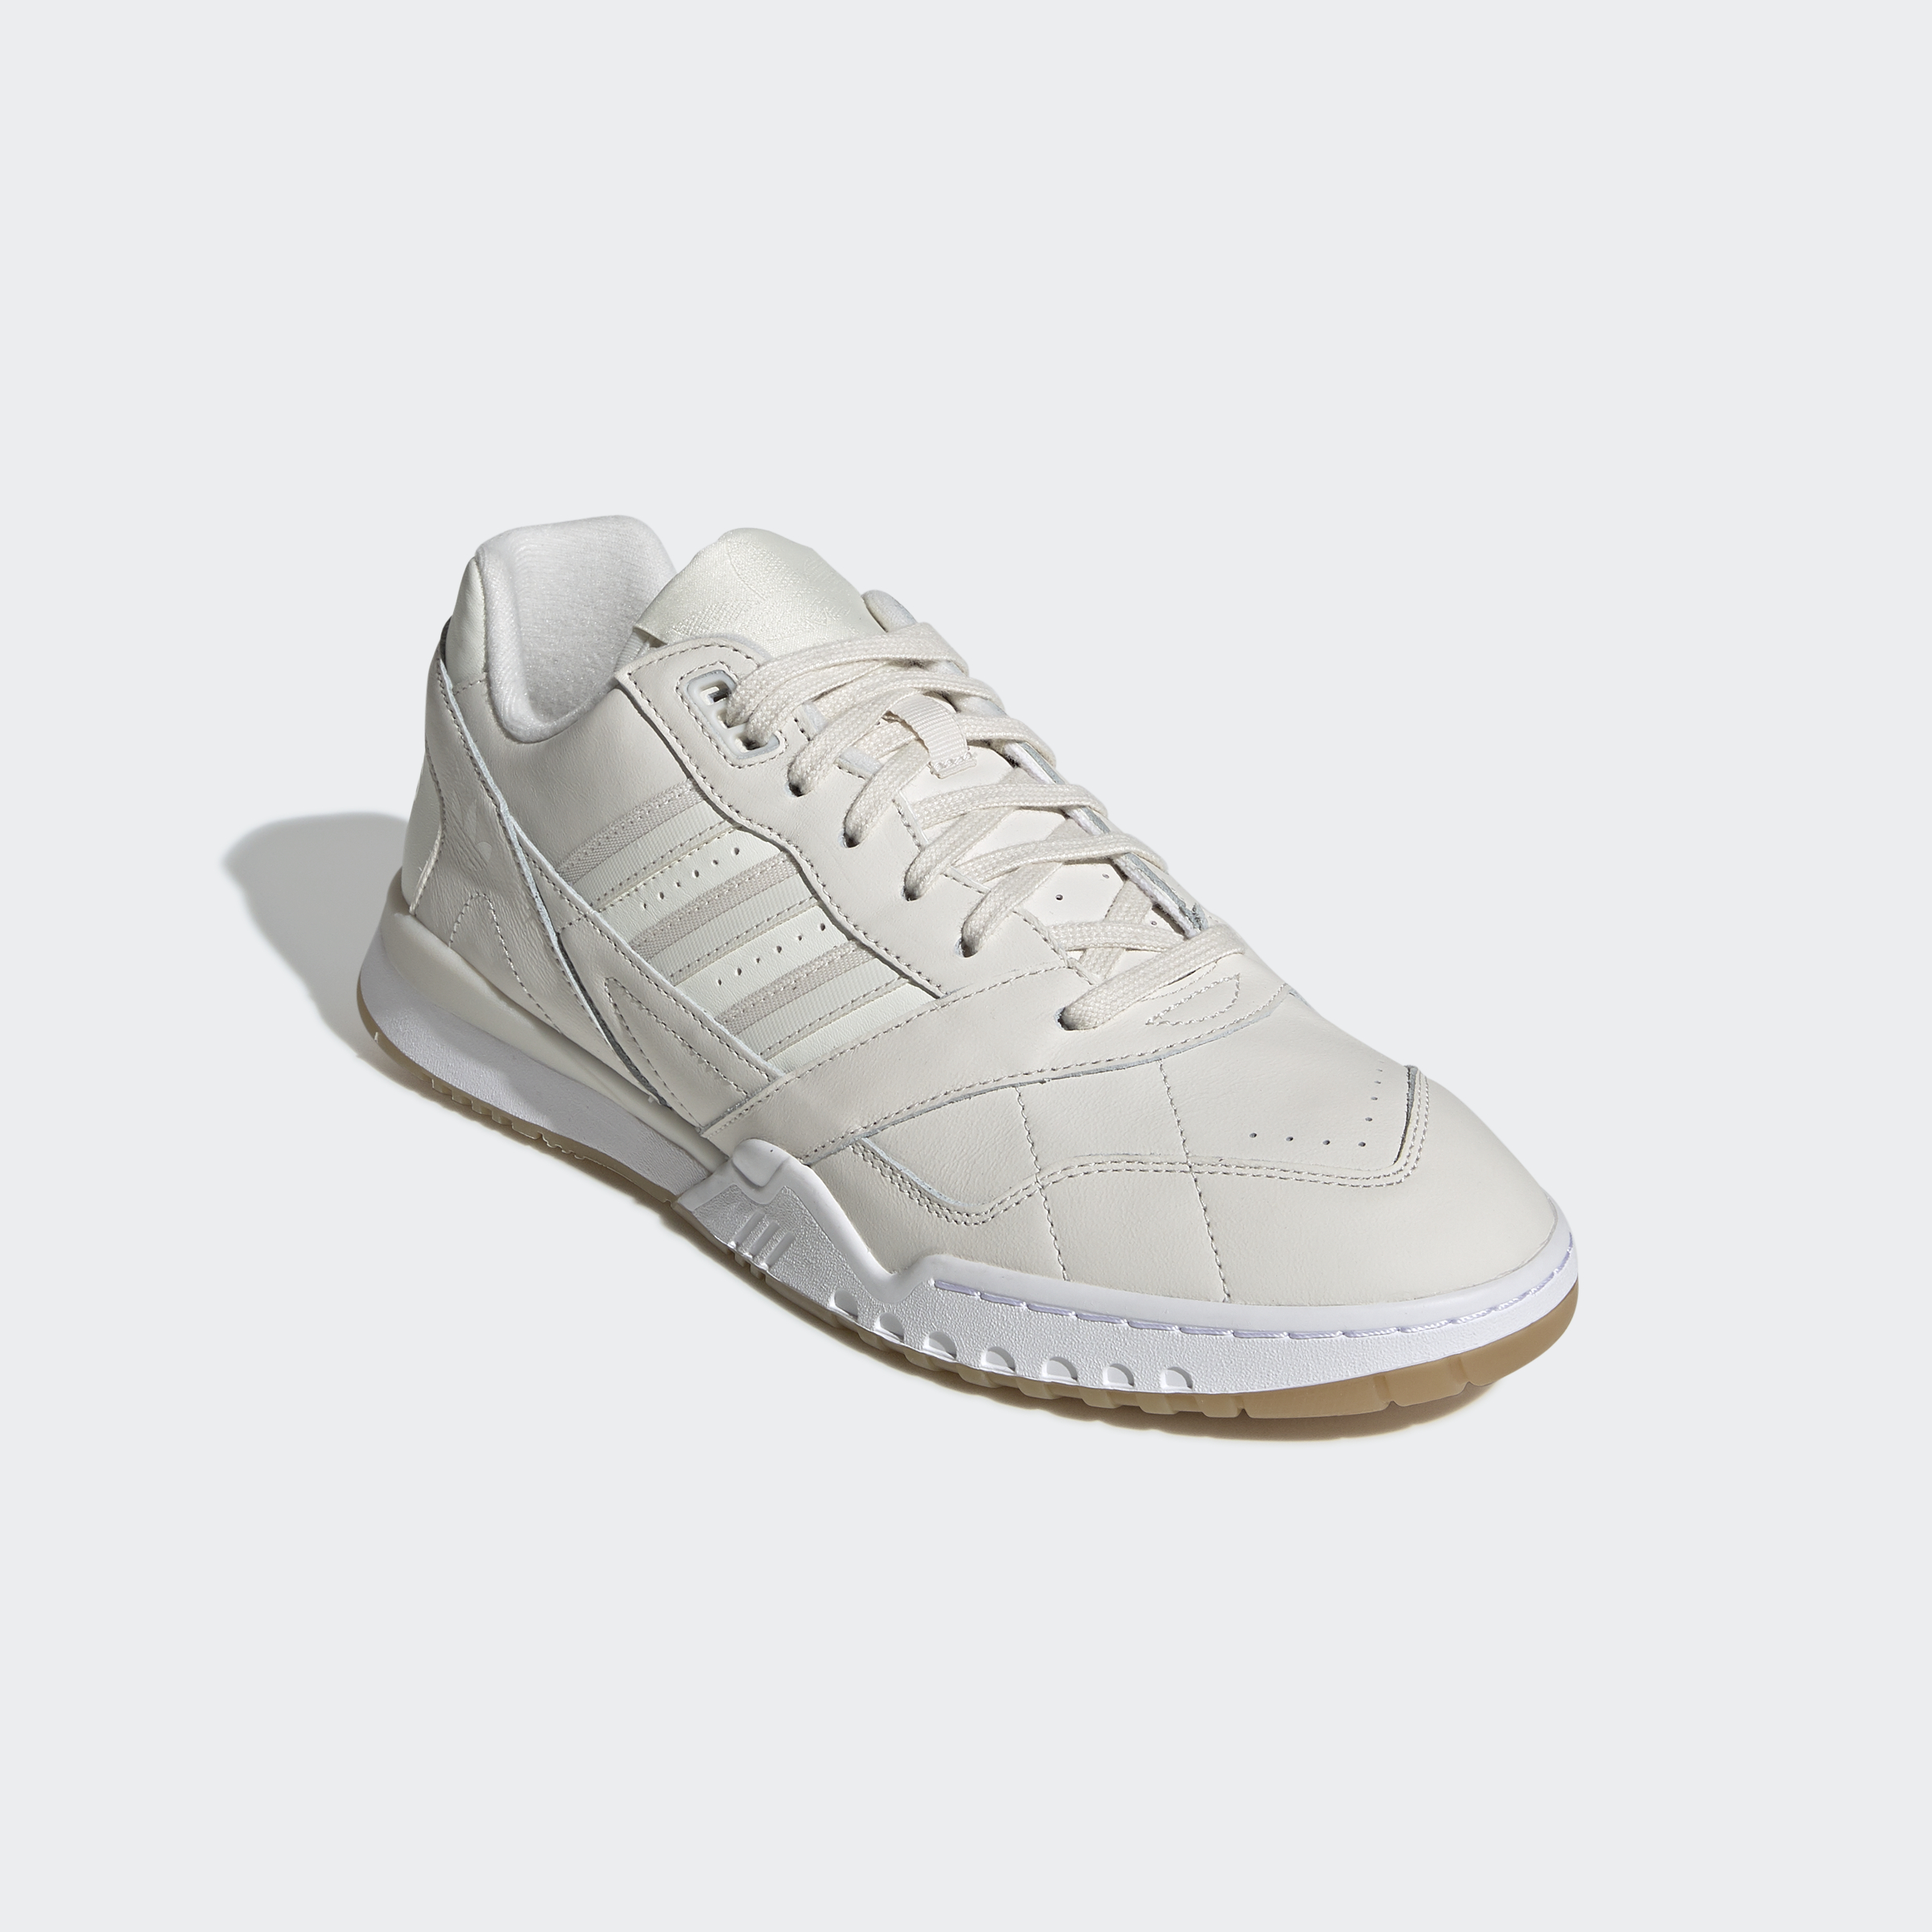 adidas-A-R-Trainer-Shoes-Athletic-amp-Sneakers thumbnail 11